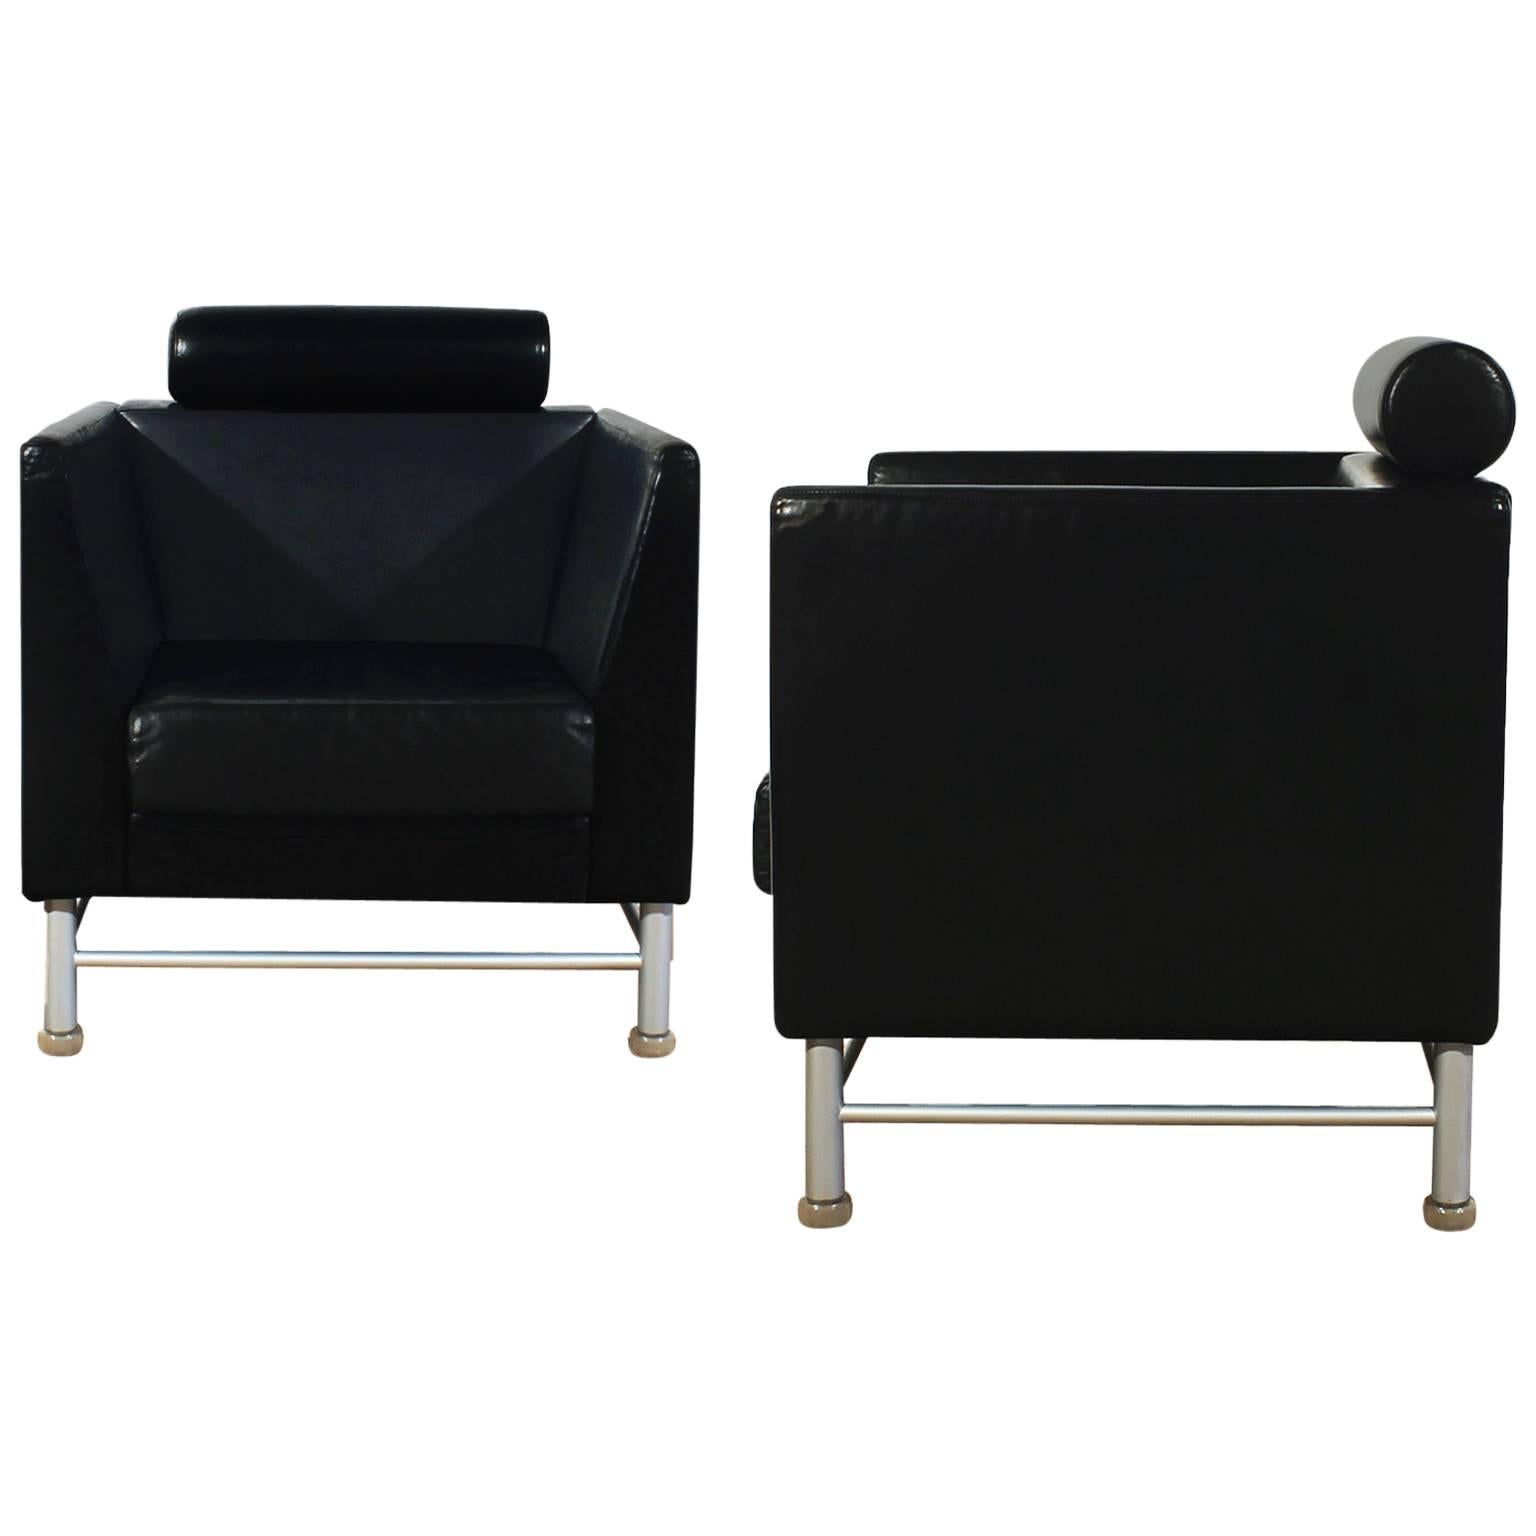 """1980s Pair of """"Eastside"""" Lounge Chairs by Ettore Sottsass for Knoll, Italy"""